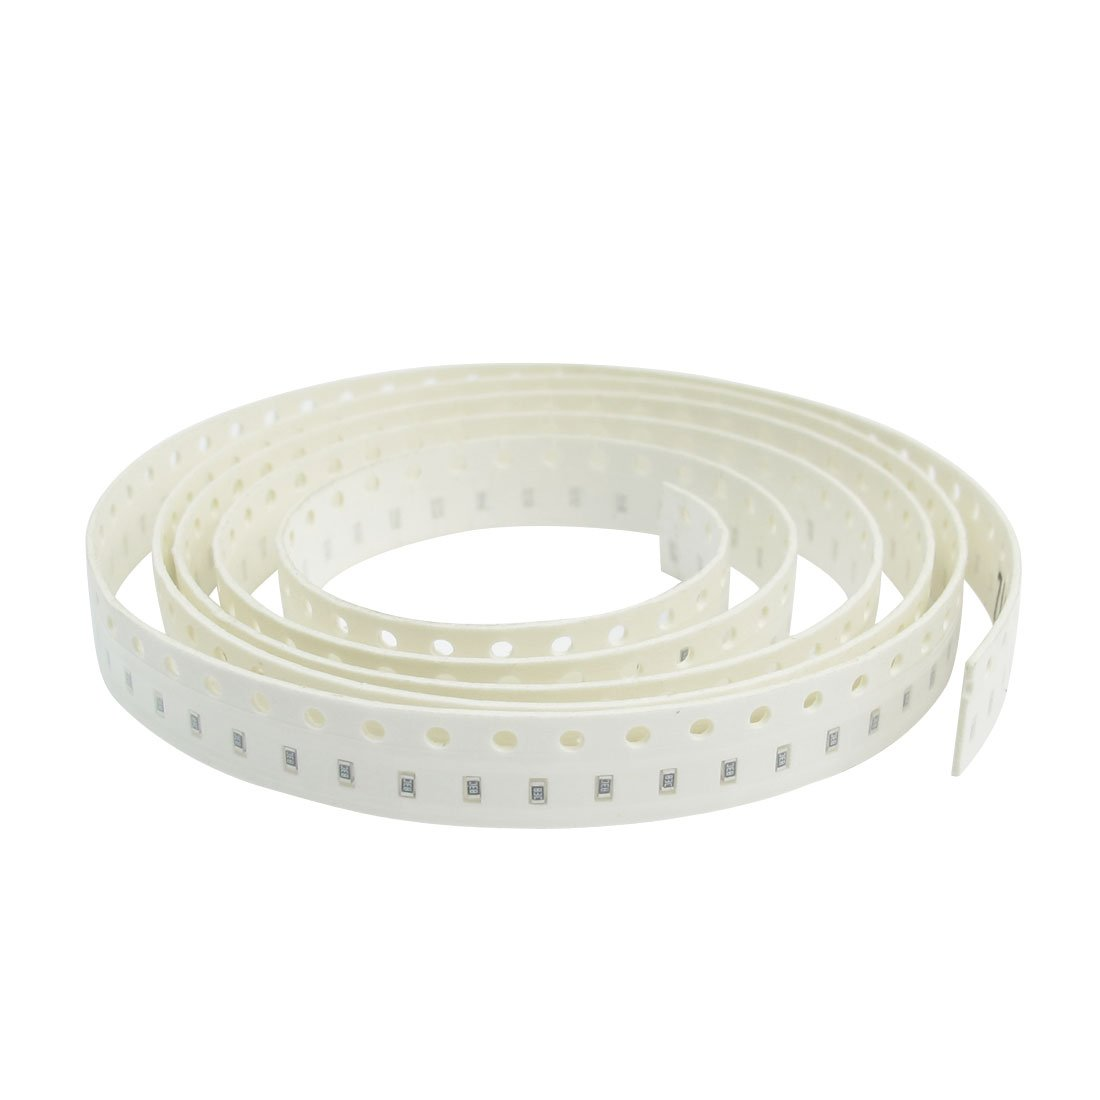 Uxcell a14042400ux0043 10K Ohm 1/8W Surface Mounting SMT Chip Resistors Strips 0805, 200 Piece